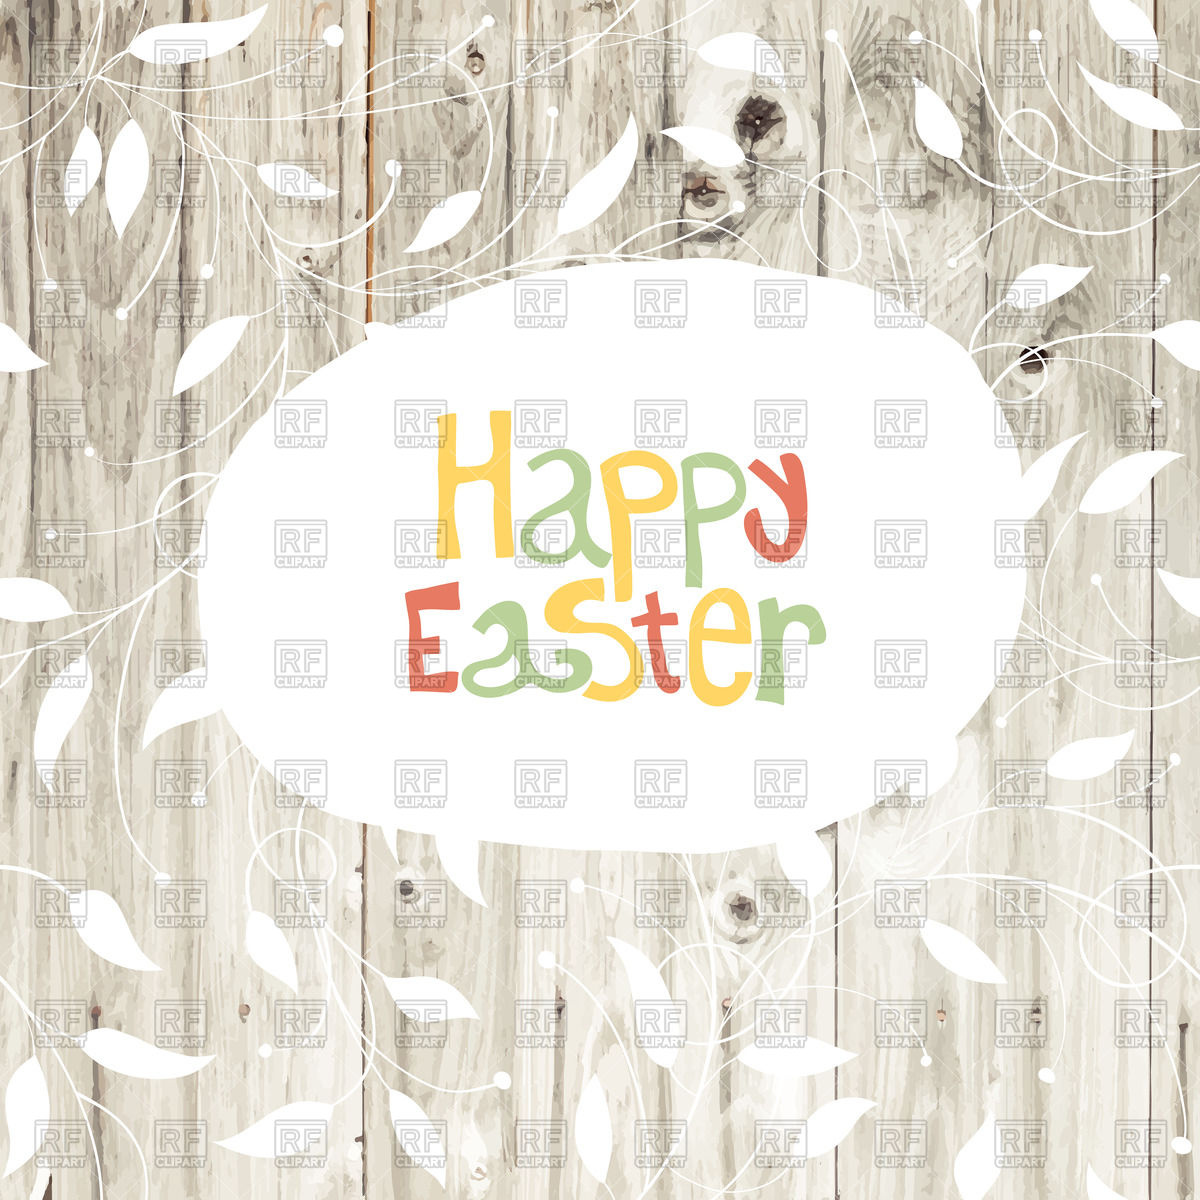 Happy Easter greeting card on wooden planks Vector Image #66122.